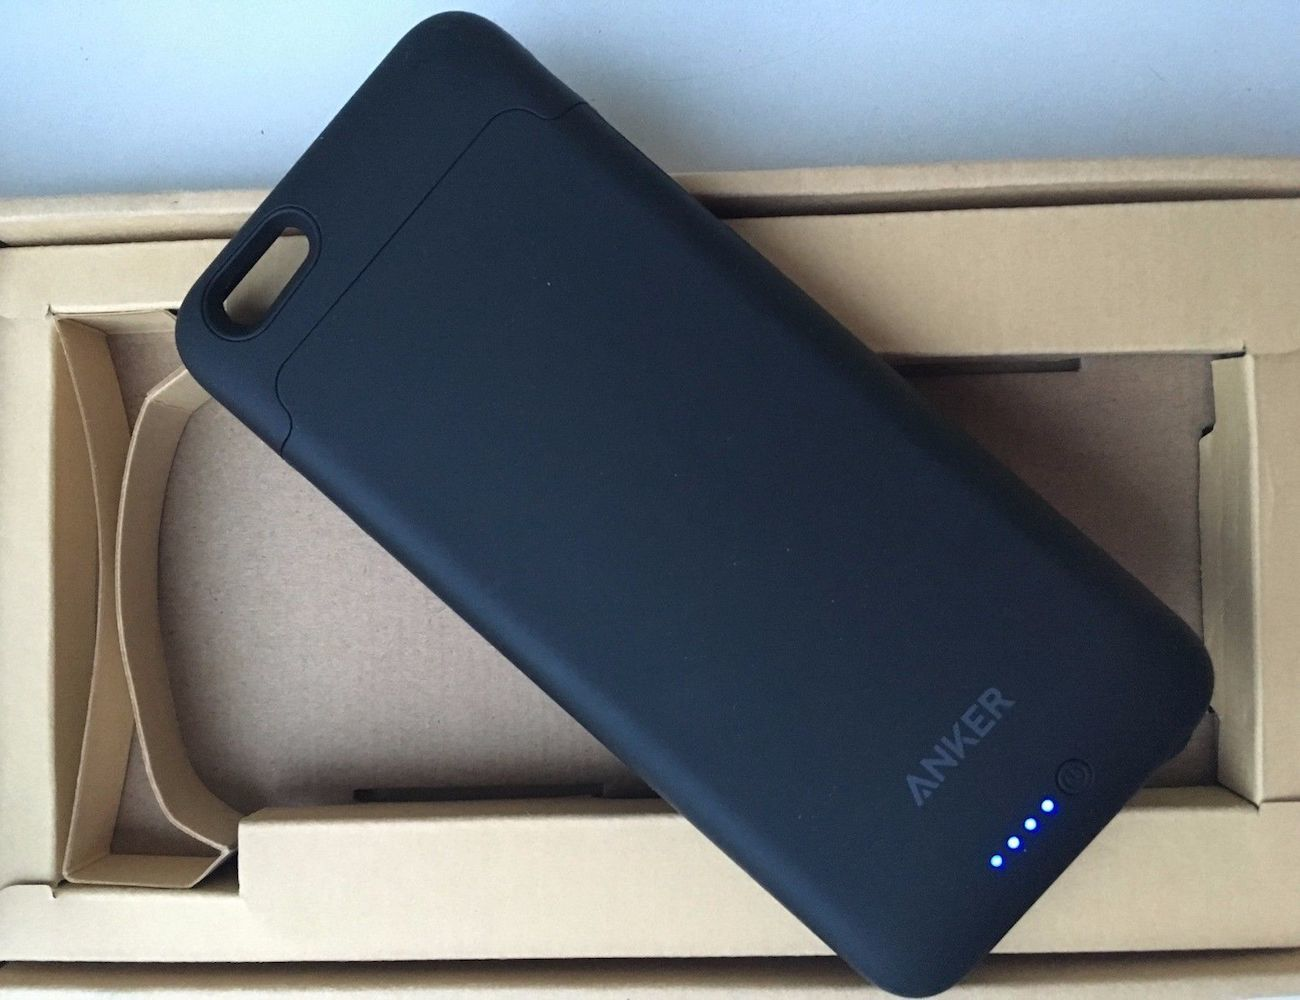 Anker Ultra Slim Extended Battery Case for iPhone 6